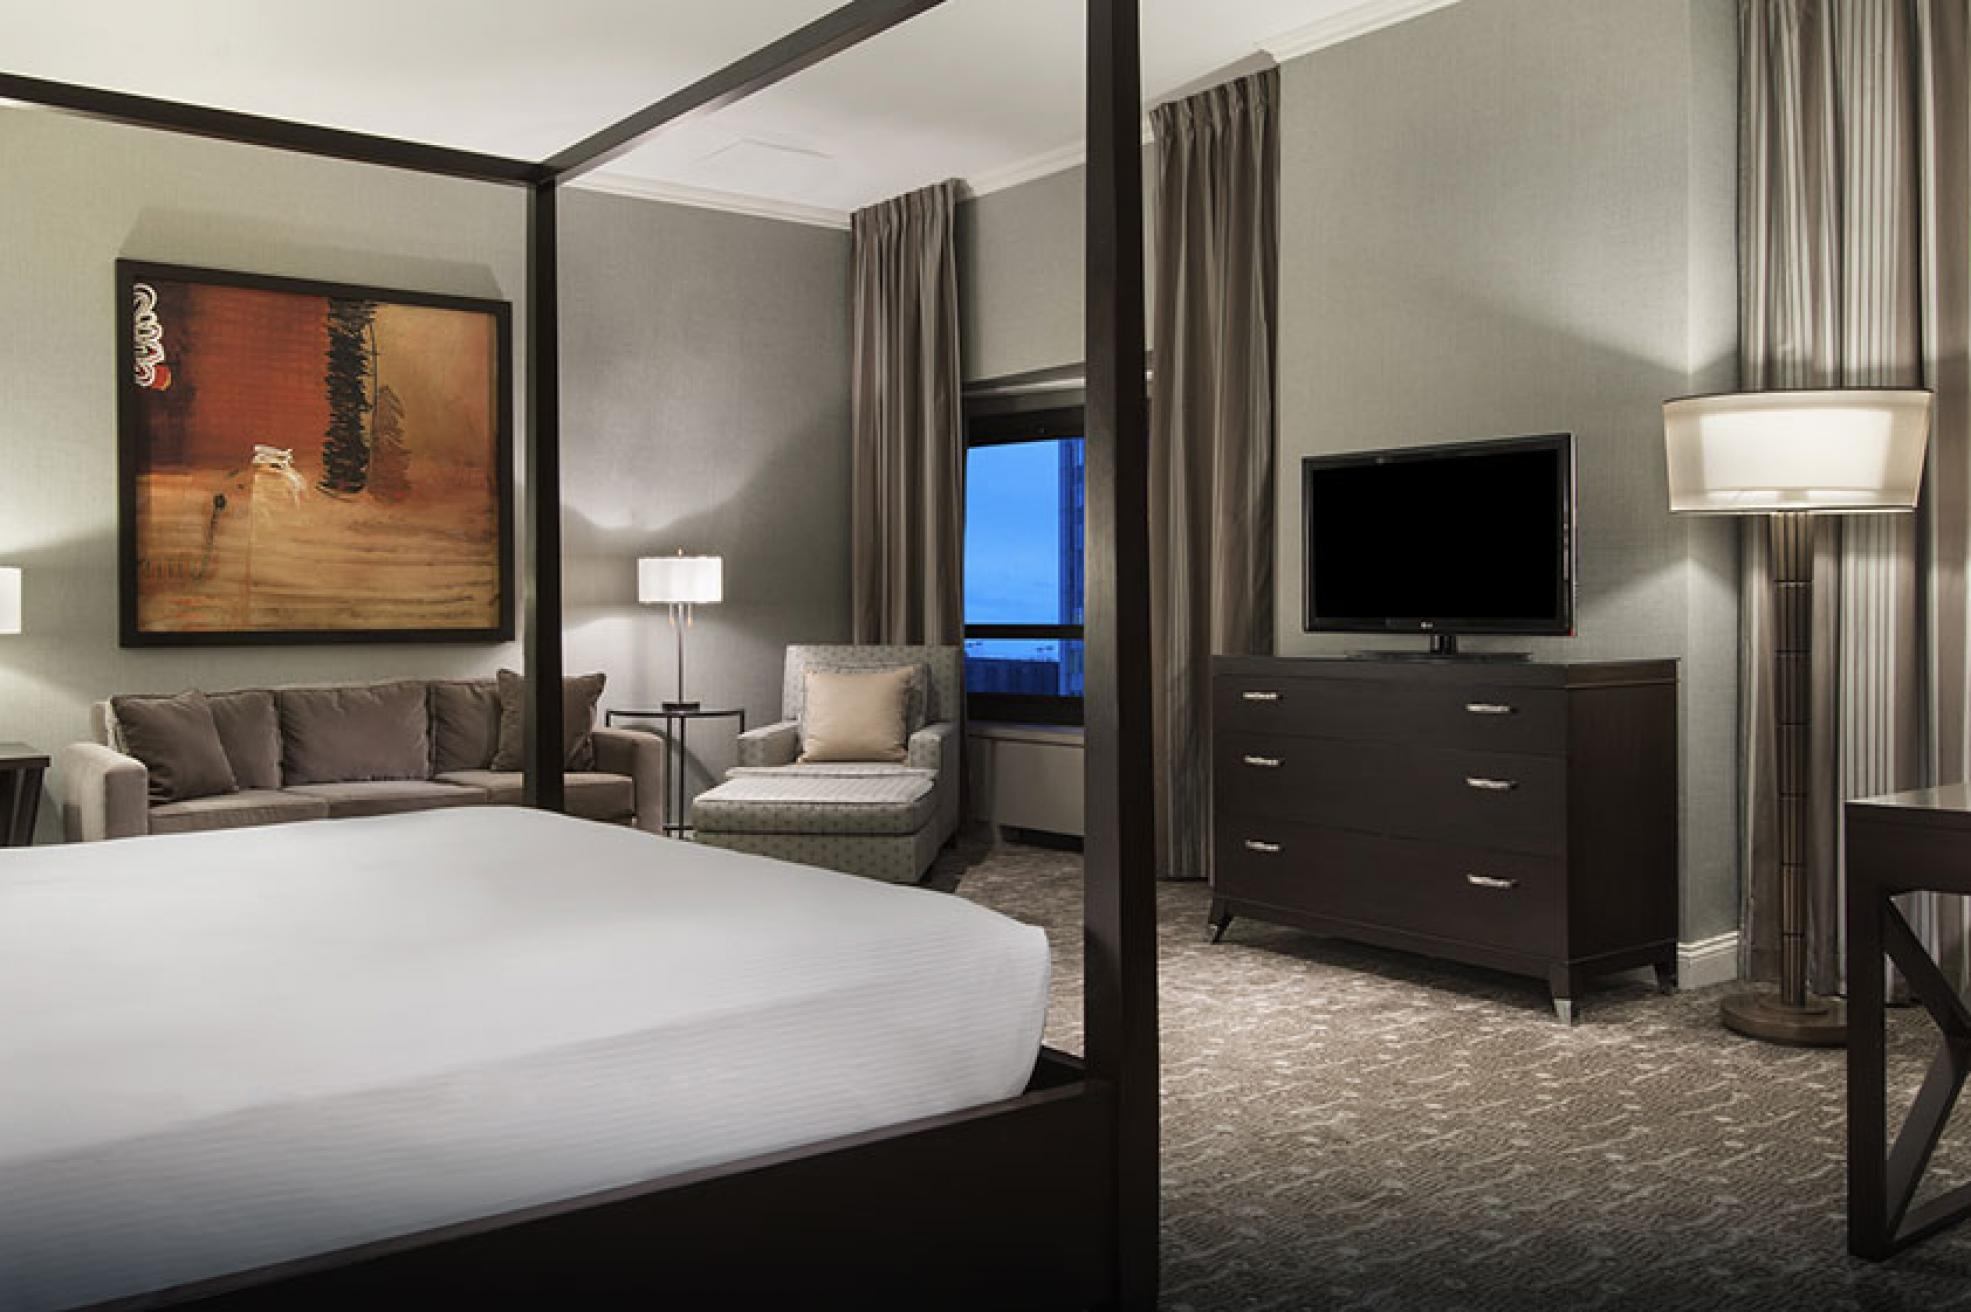 Hotel a new york new york hilton midtown hotel a manhattan hotel new york hilton midtown stati uniti suite presidenziale sciox Image collections